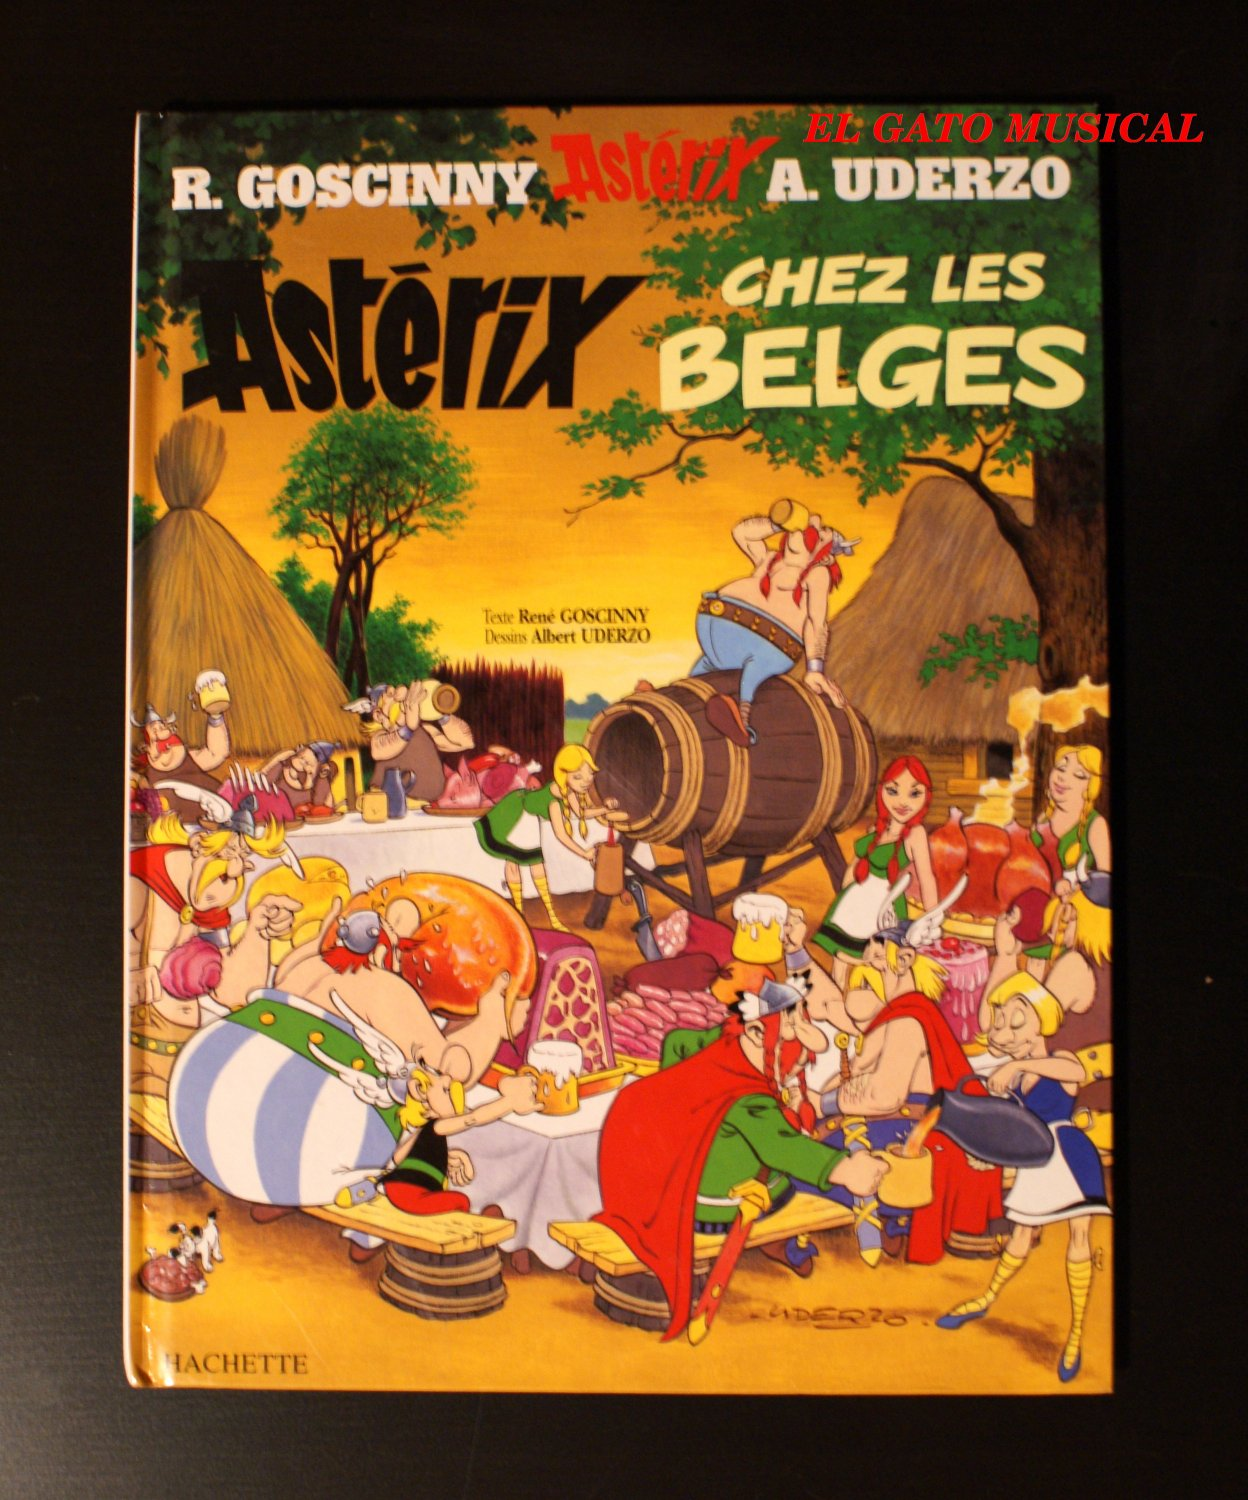 ASTERIX CHEZ LES BELGES - Goscinny / Uderzo - Comic Album in French - book #24